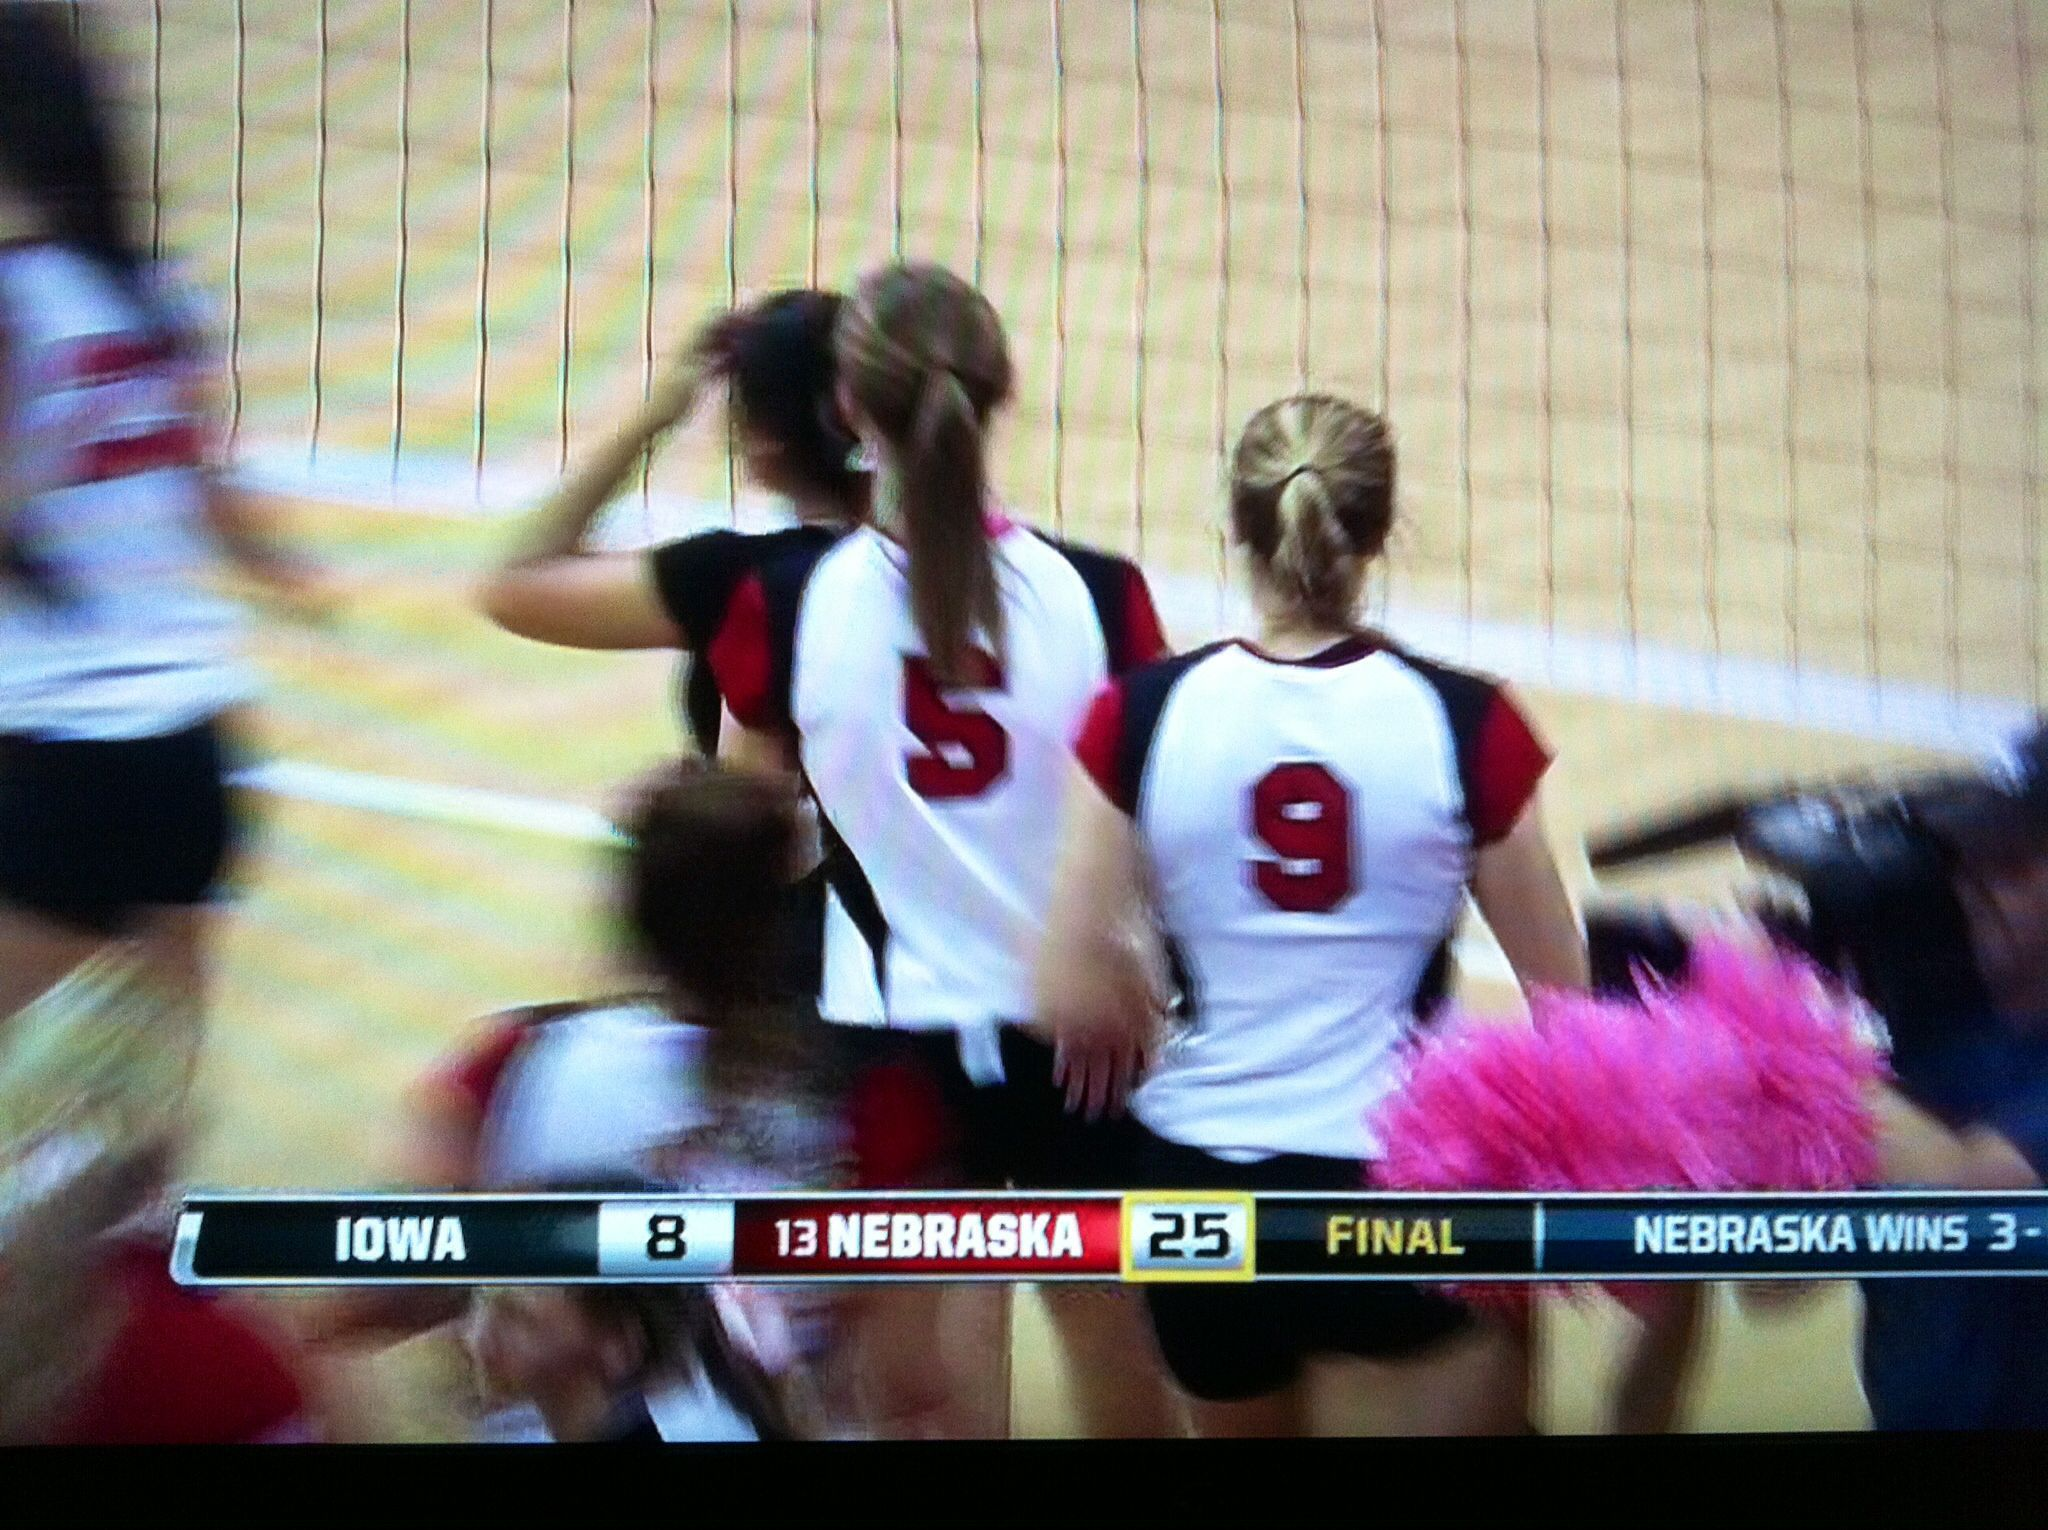 10/23/13 vs Iowa 3rd and final set